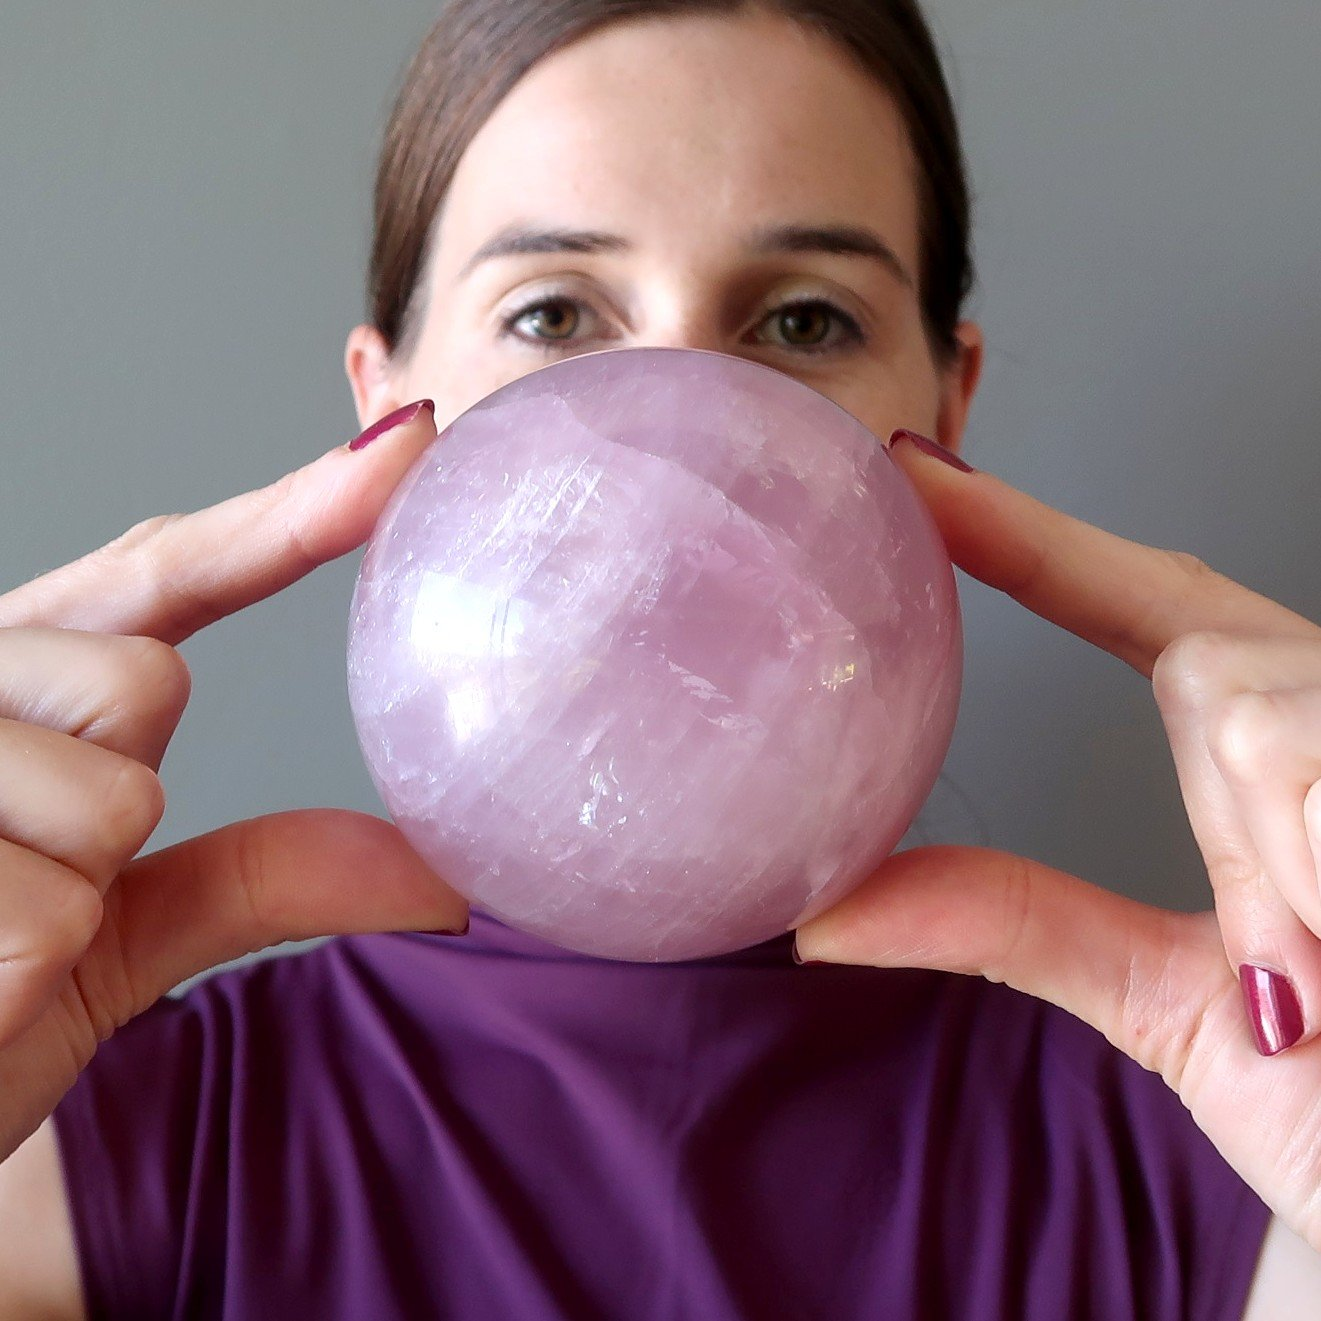 lucia of satin crystals holding up a pink rose quartz crystal ball